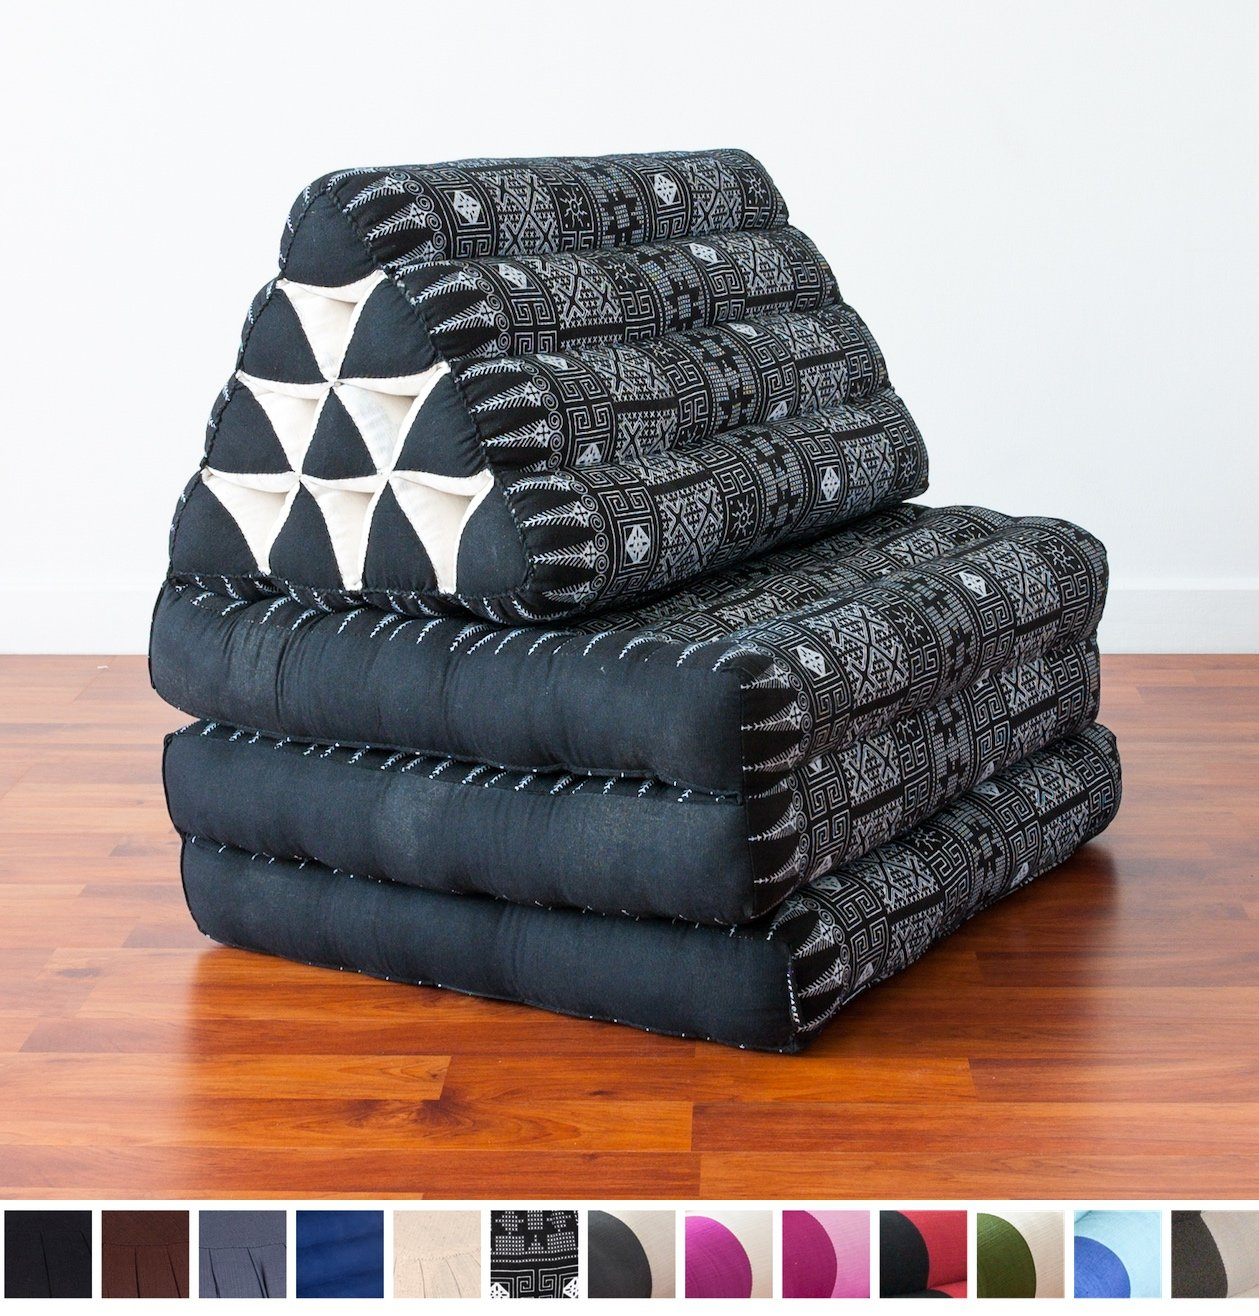 Leewadee Foldout Triangle Thai Cushion, 67x21x3 inches, Kapok Fabric, Black, Premium Double Stitched by Leewadee